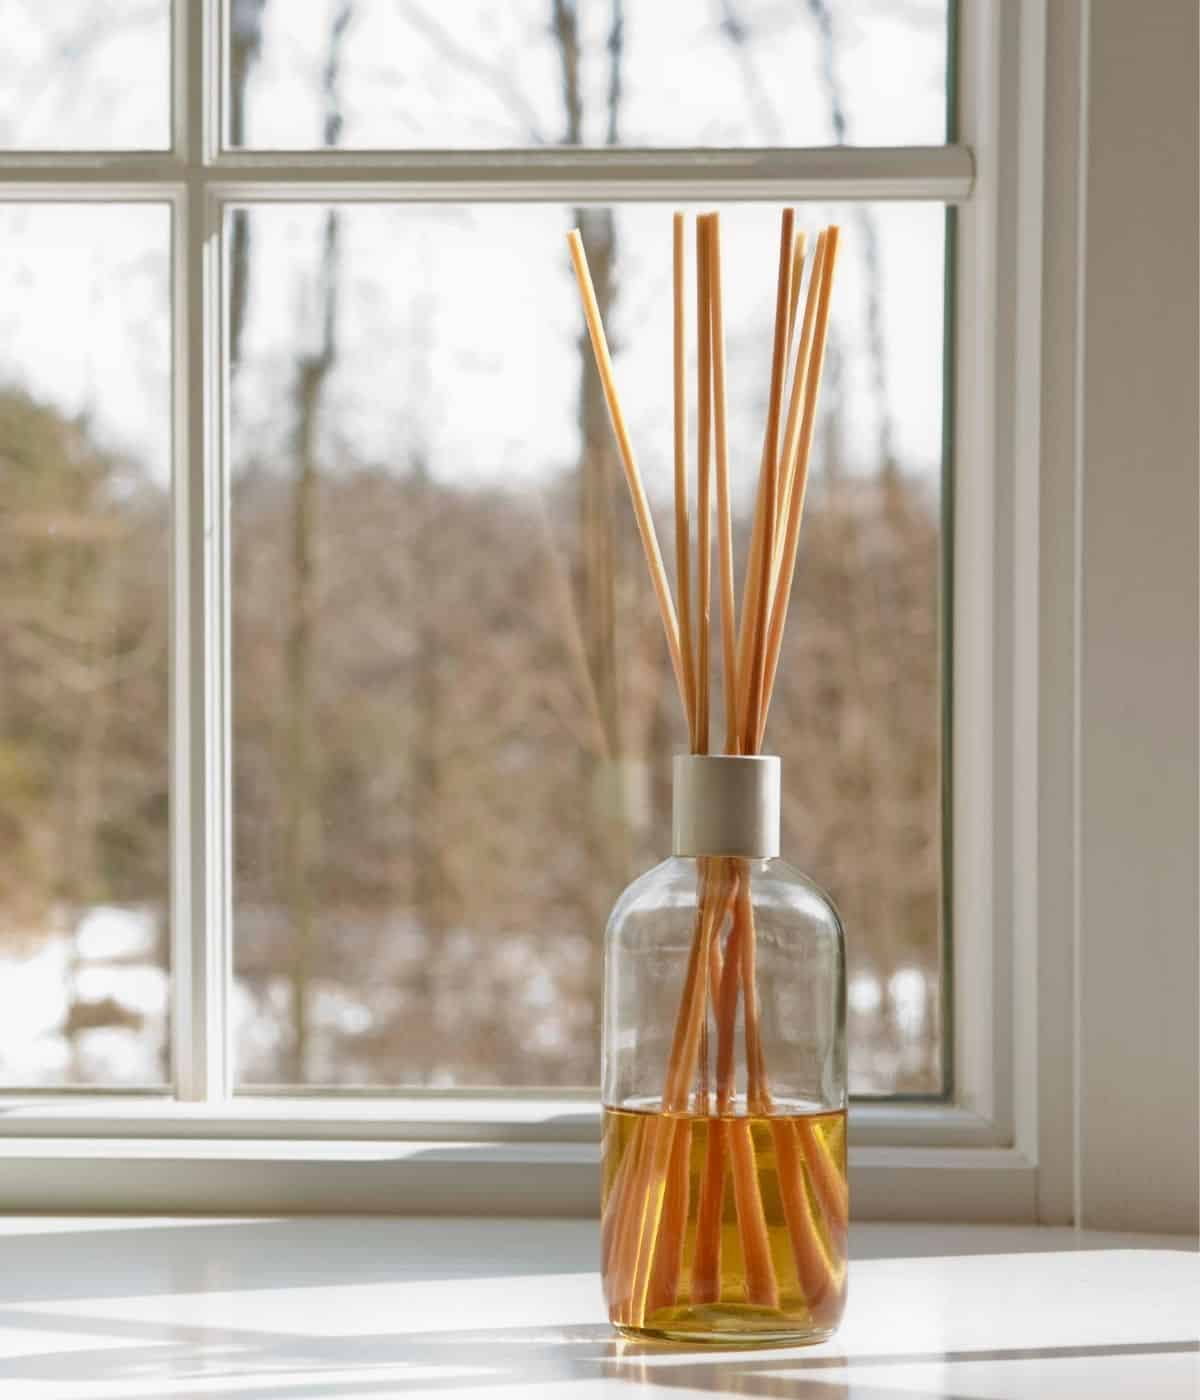 Reed diffuser by a window.